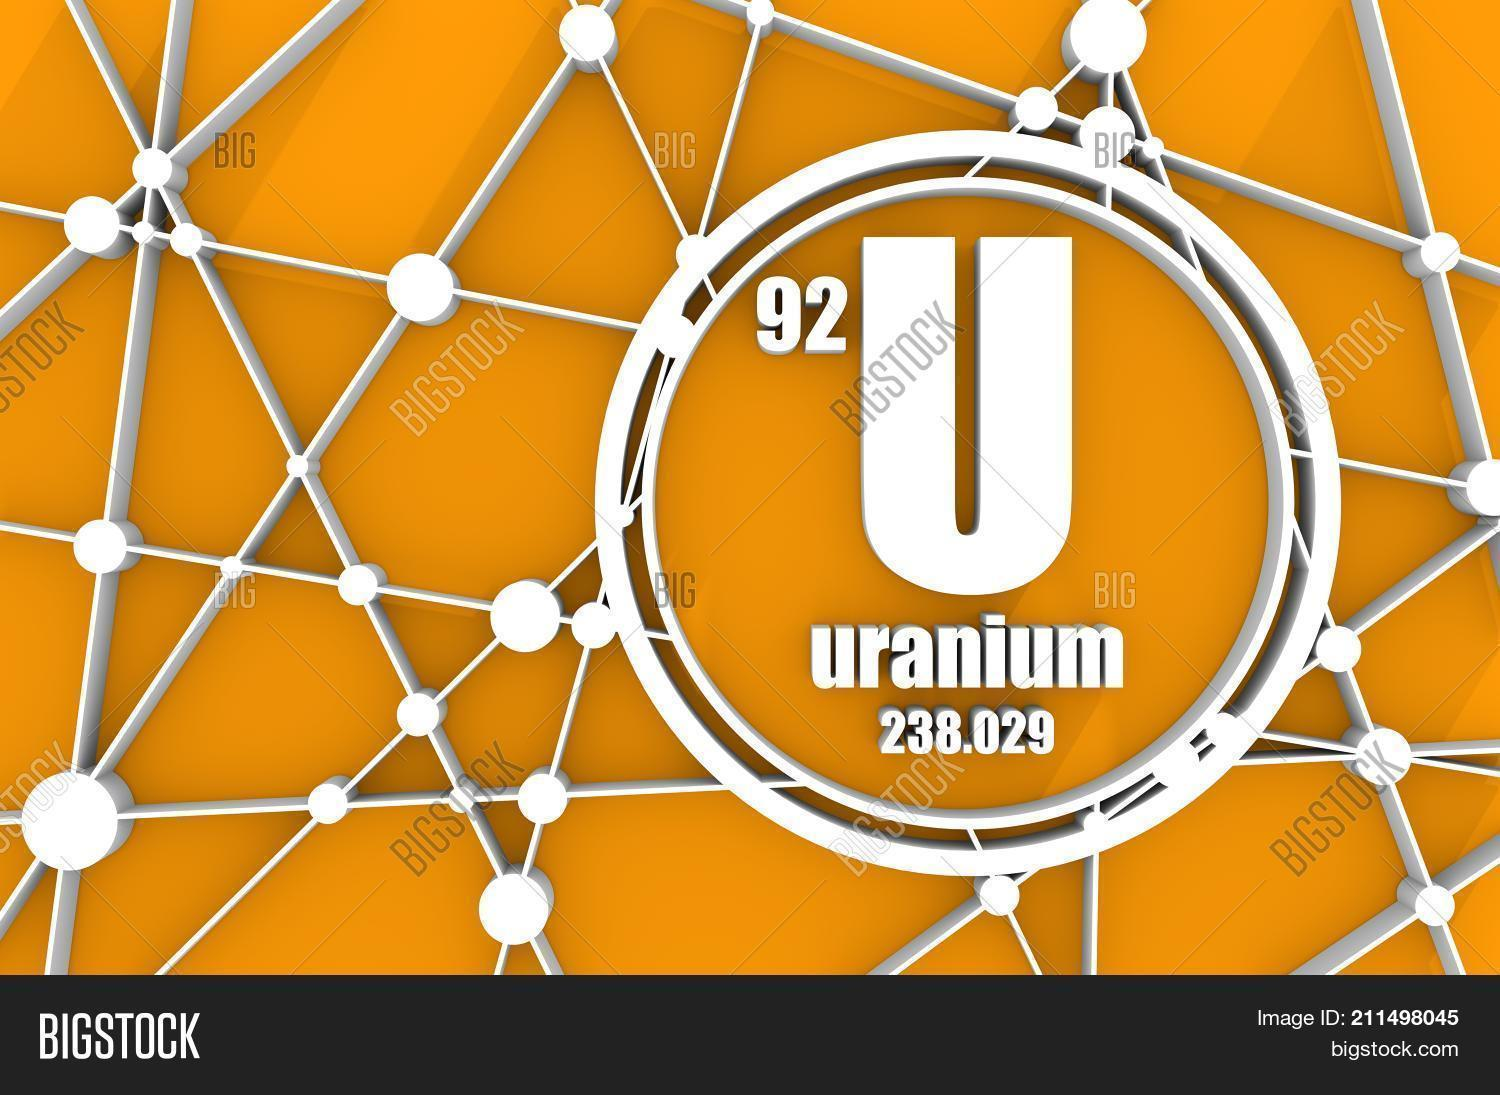 Uranium chemical image photo free trial bigstock uranium chemical element sign with atomic number and atomic weight chemical element of periodic urtaz Choice Image